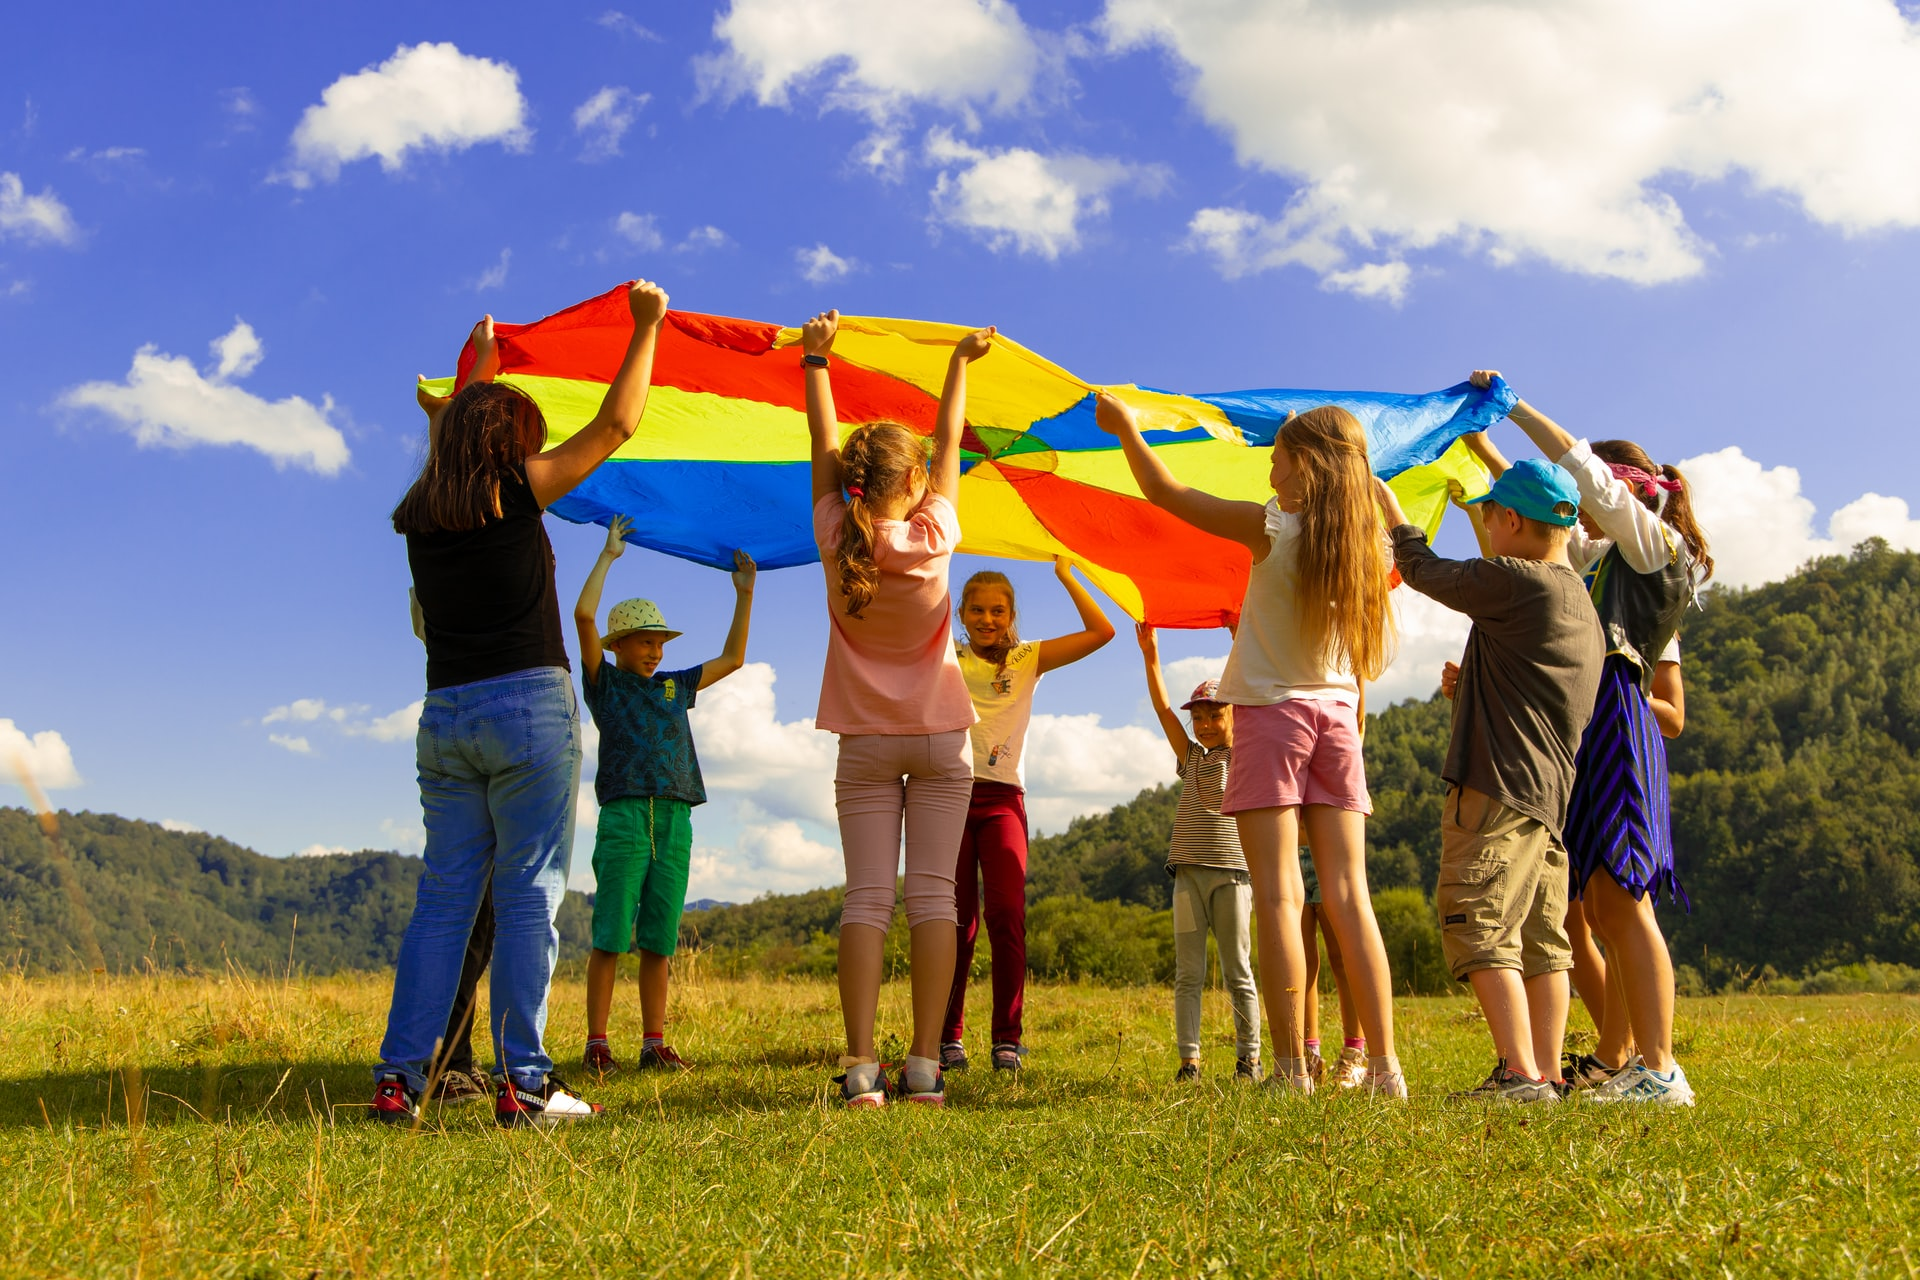 kids playing a game outside with a big parachute tarp